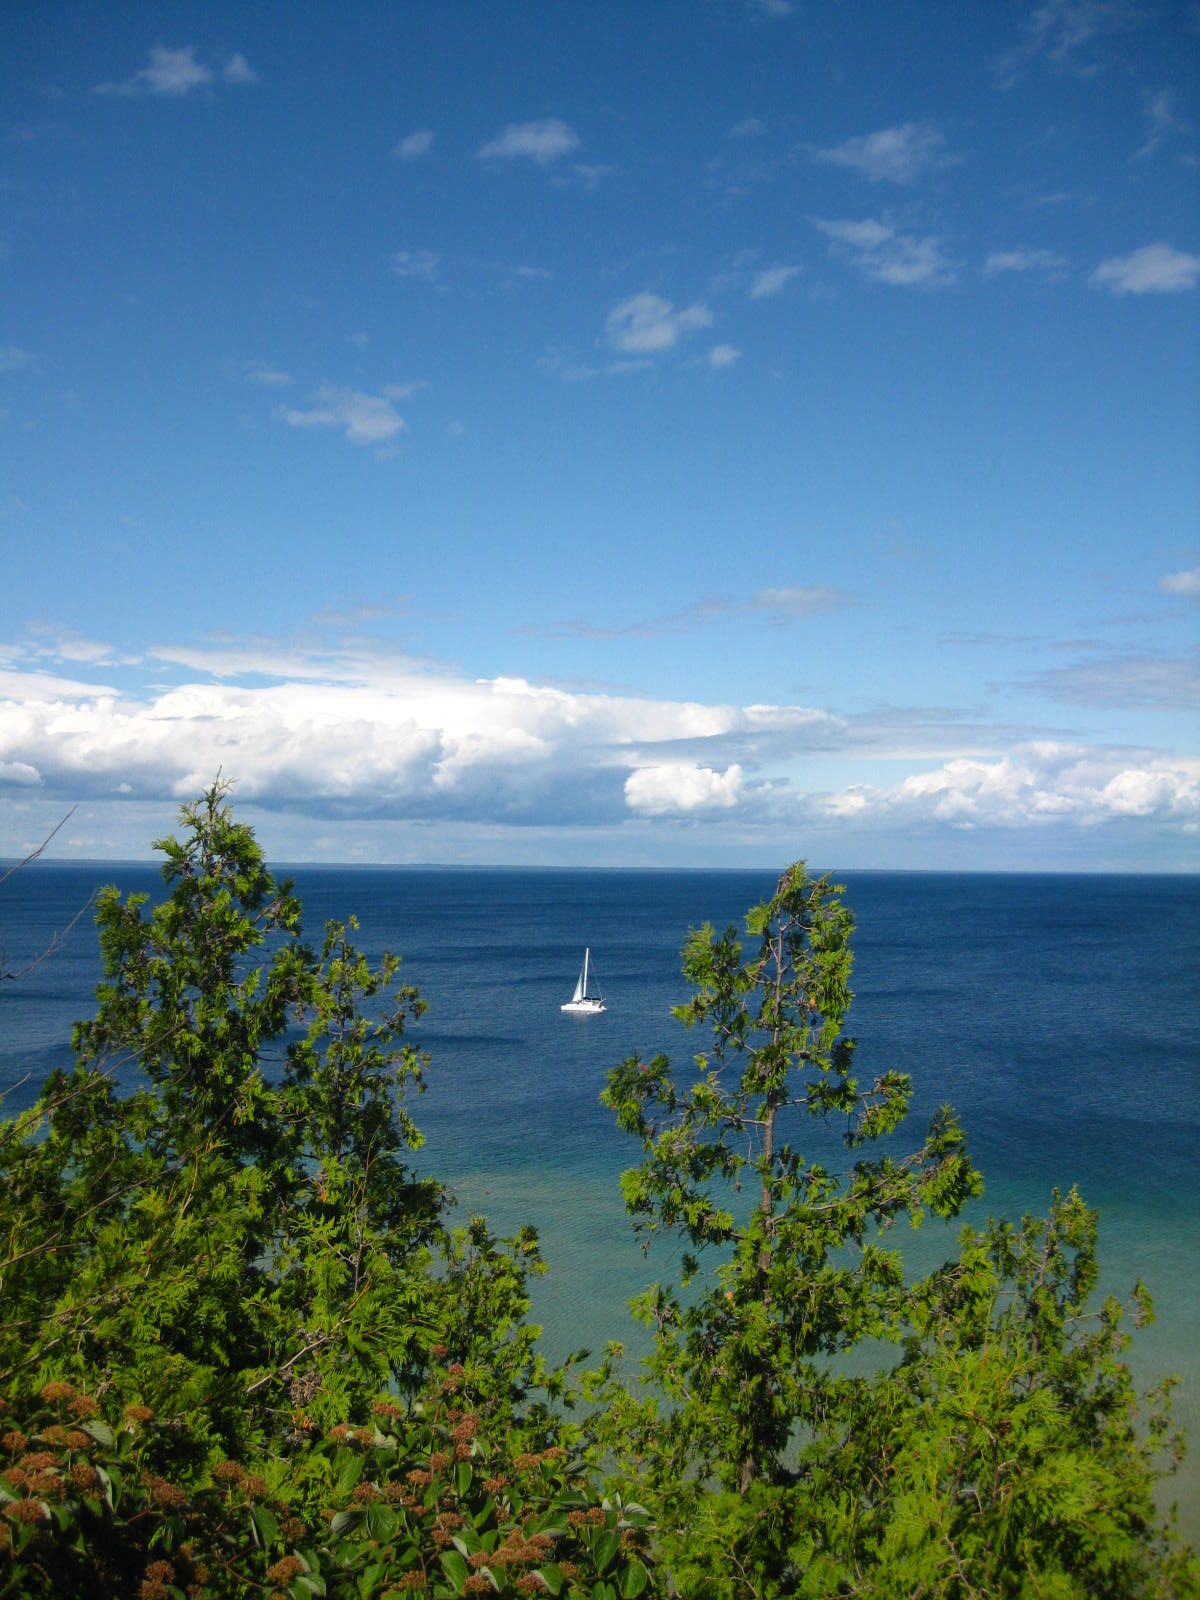 Another view of Lake Superior from Mackinac Island.